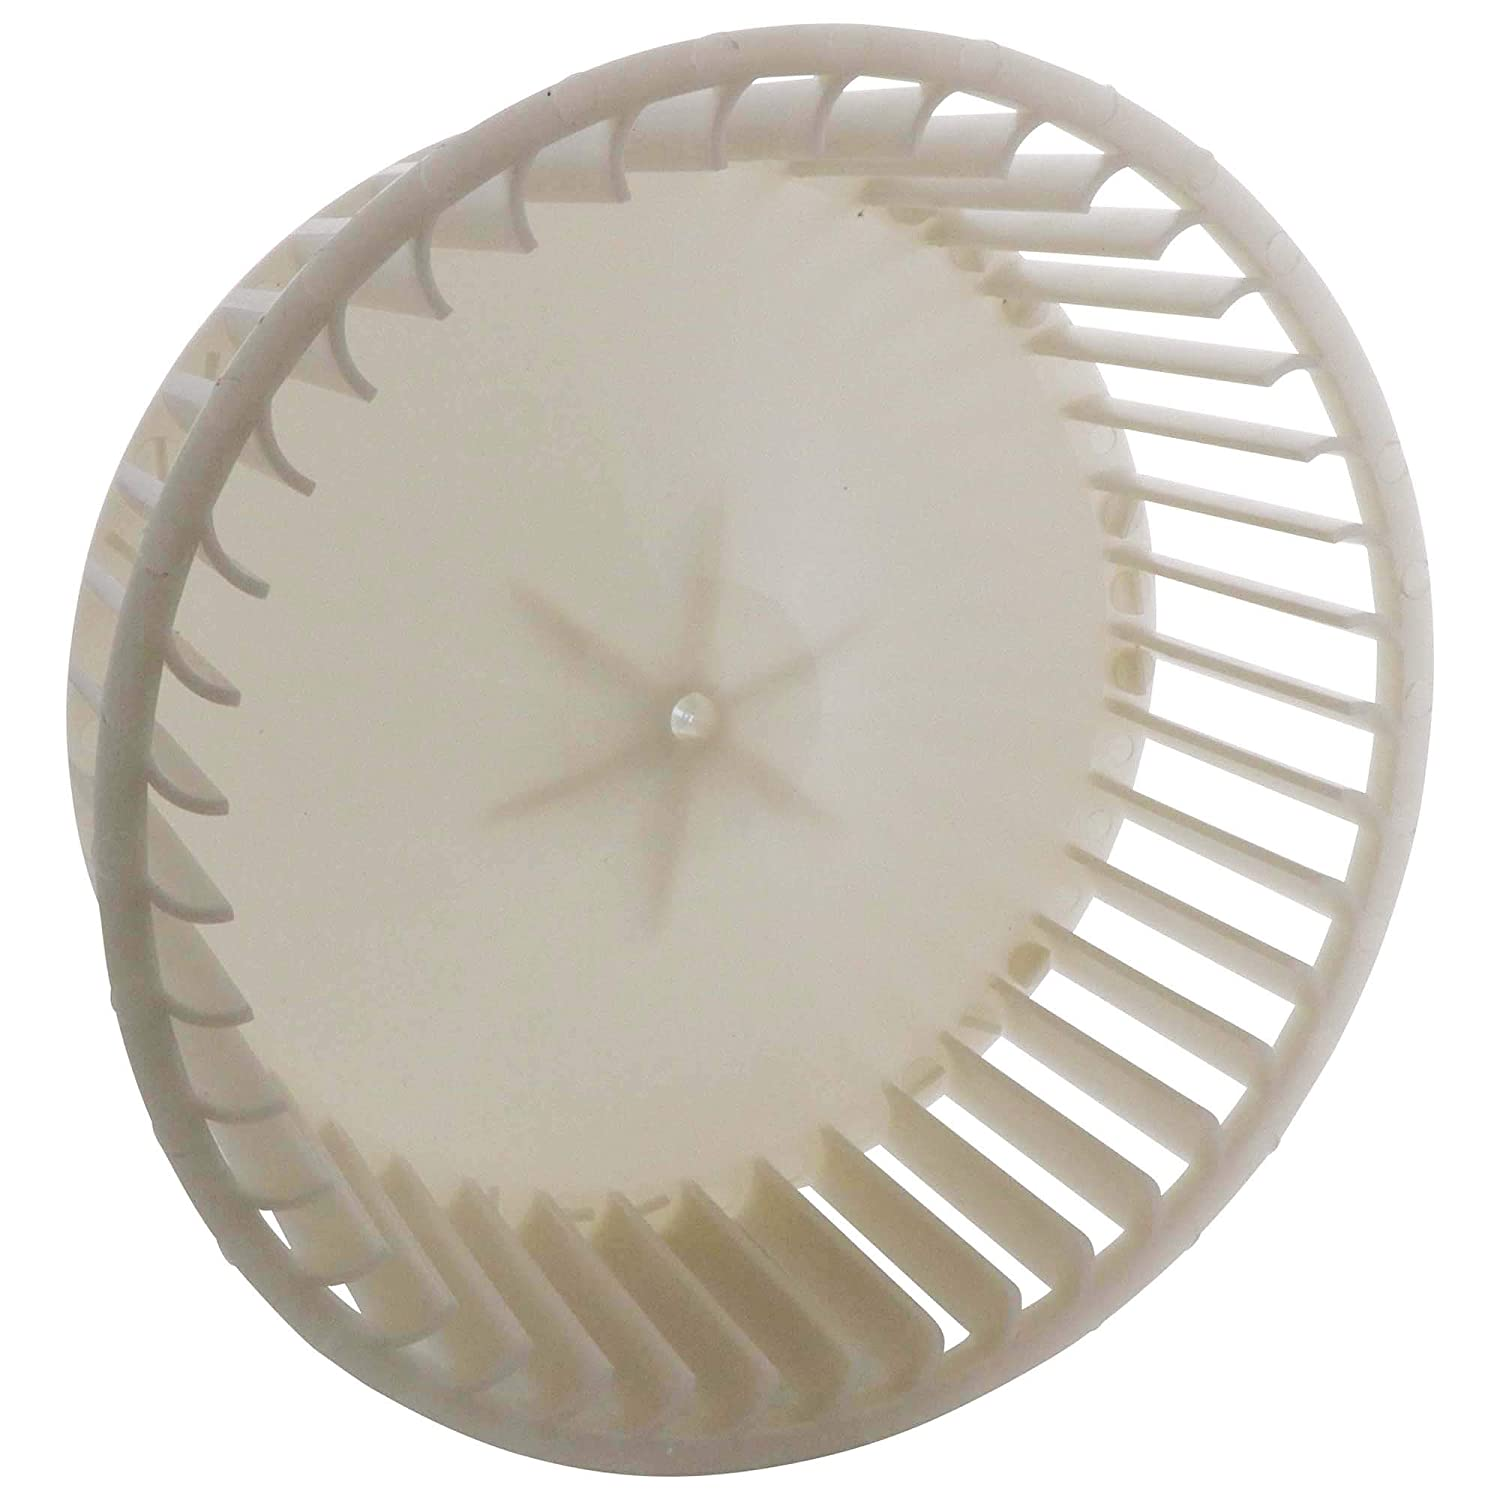 B07XV84N8L Kitchen Basics 101 5901A000 Fan Blower Wheel Assembly Replacement for Broan NuTone 61Ci7zr9zWL